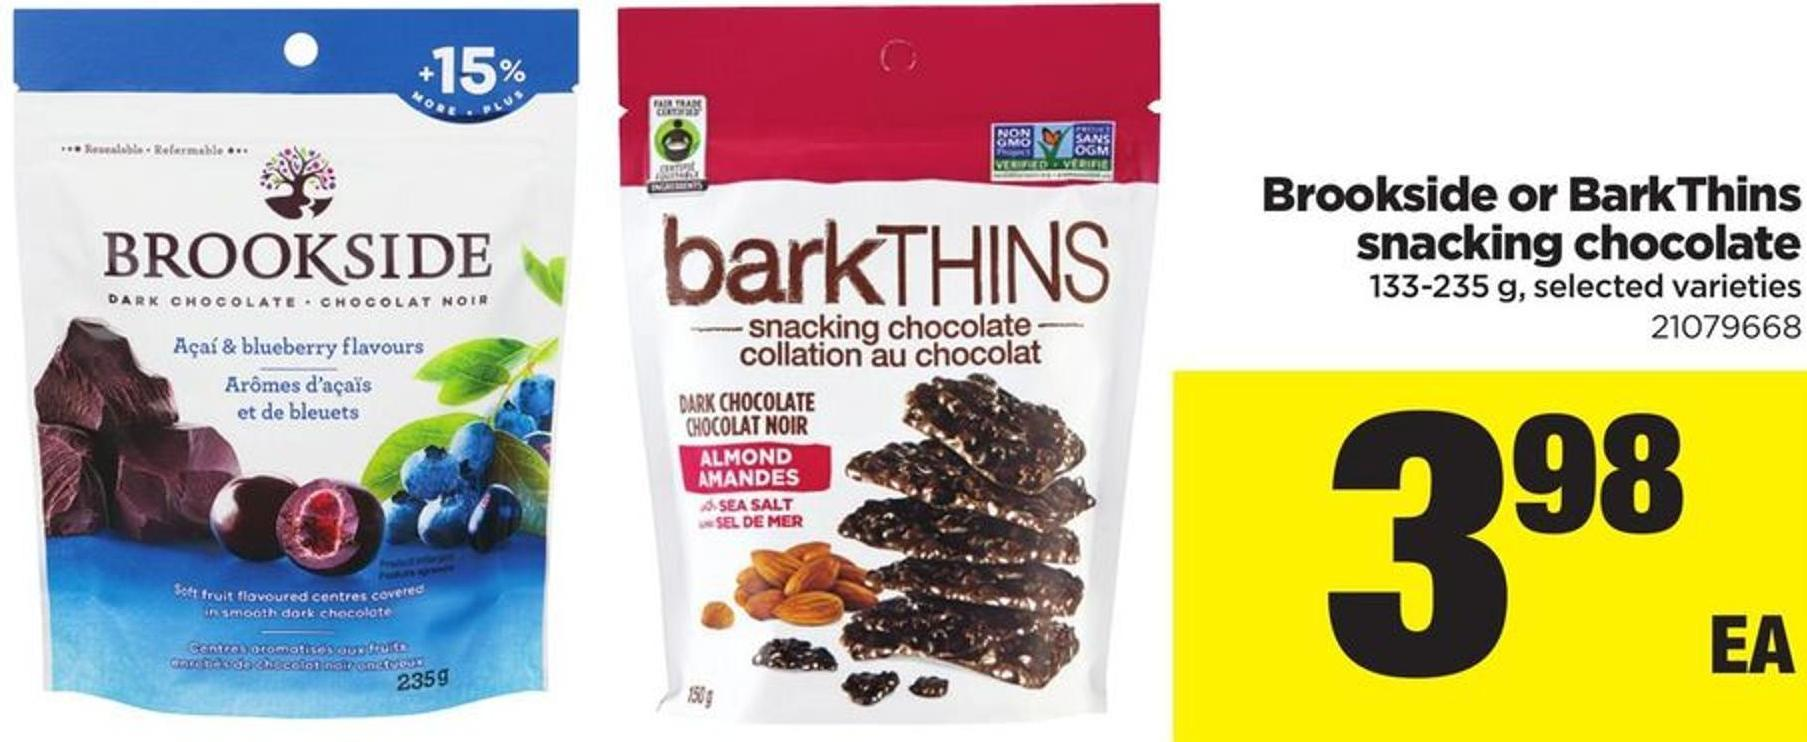 Brookside Or Barkthins Snacking Chocolate - 133-235 G